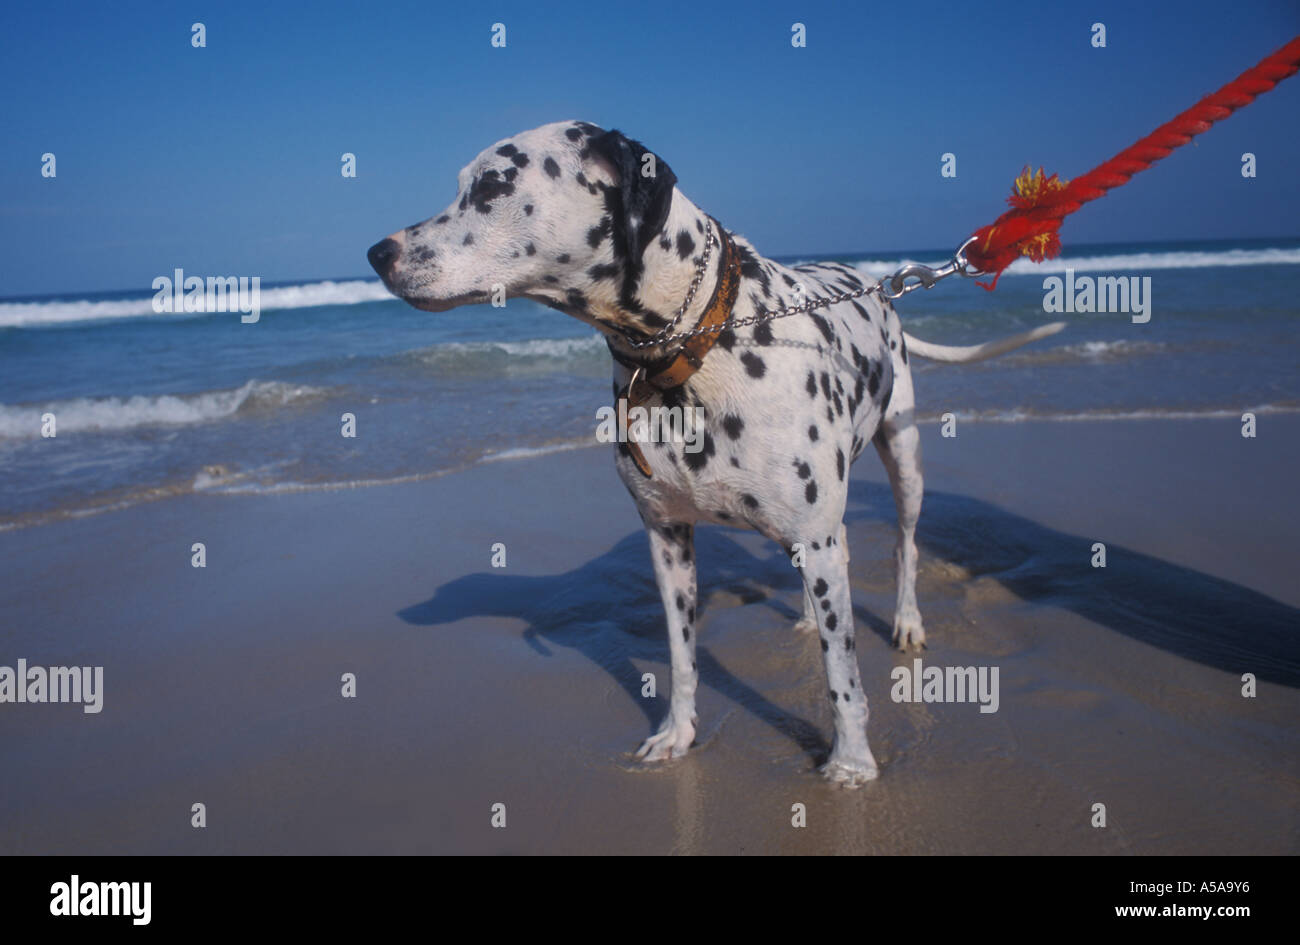 Dalmation on a red lead , New Brighton Beach , NSW , Australia - Stock Image